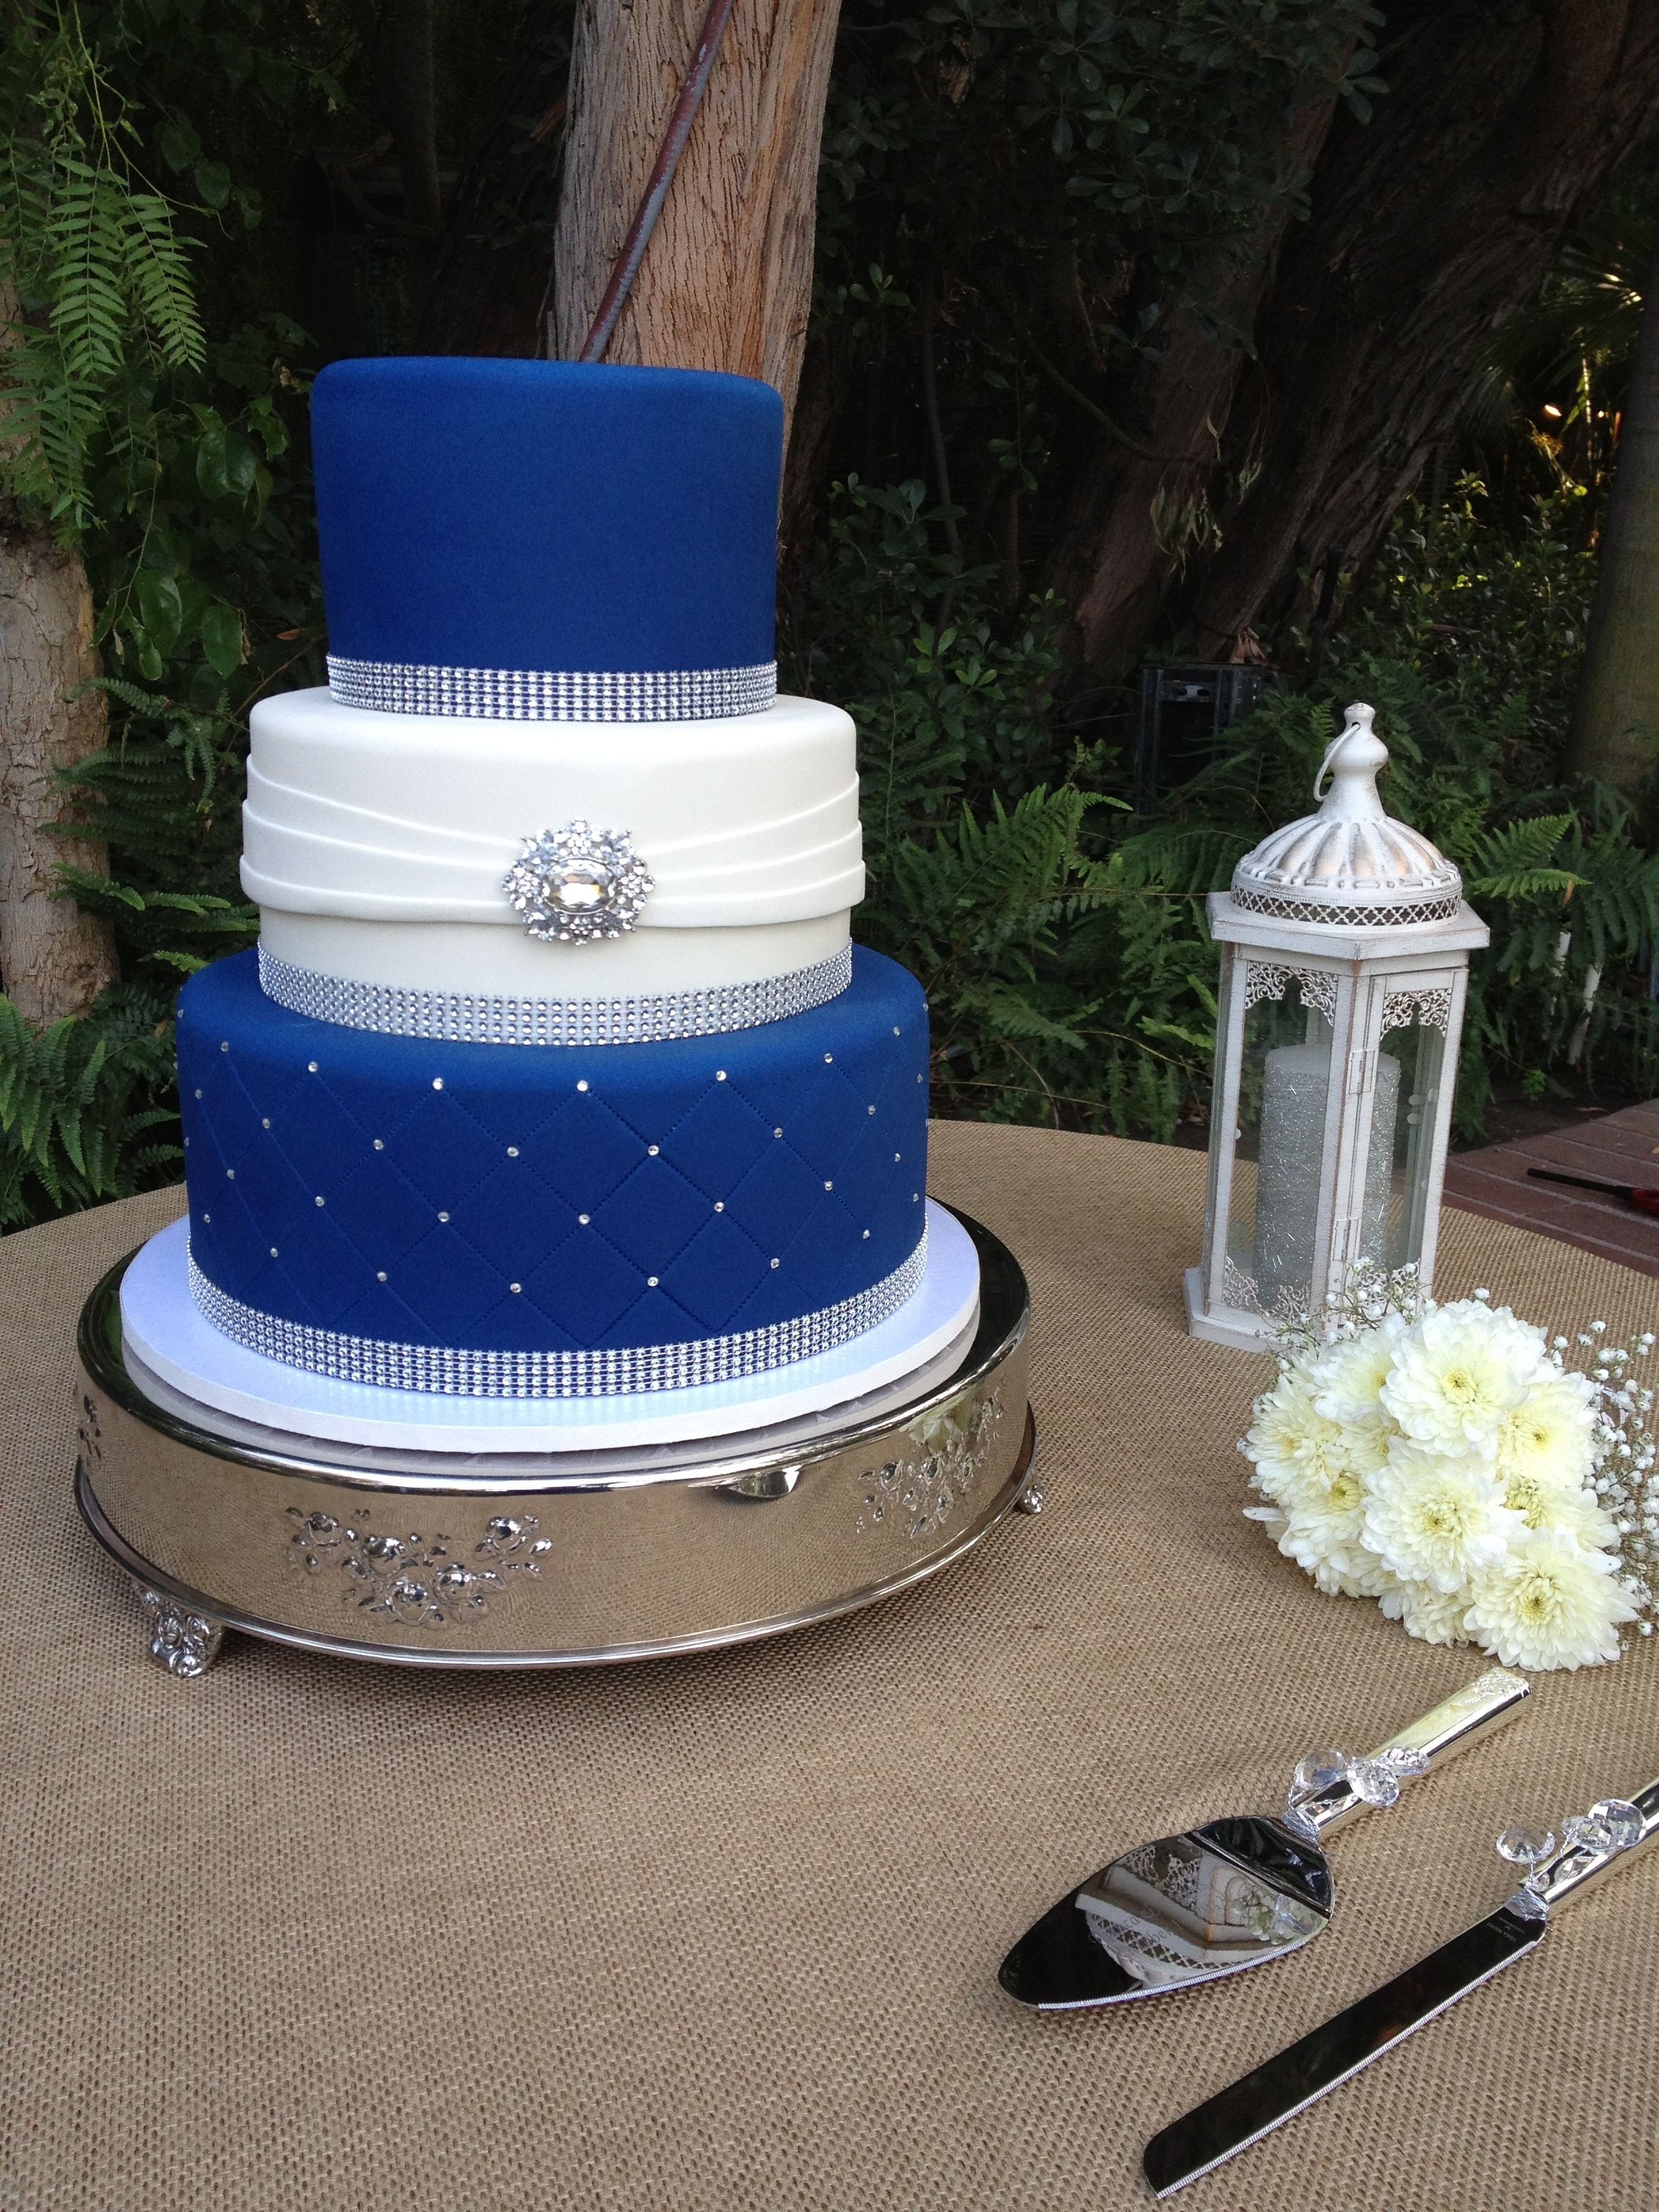 pictures of royal blue wedding cakes three tier fondant wedding cake royal blue and white 18426